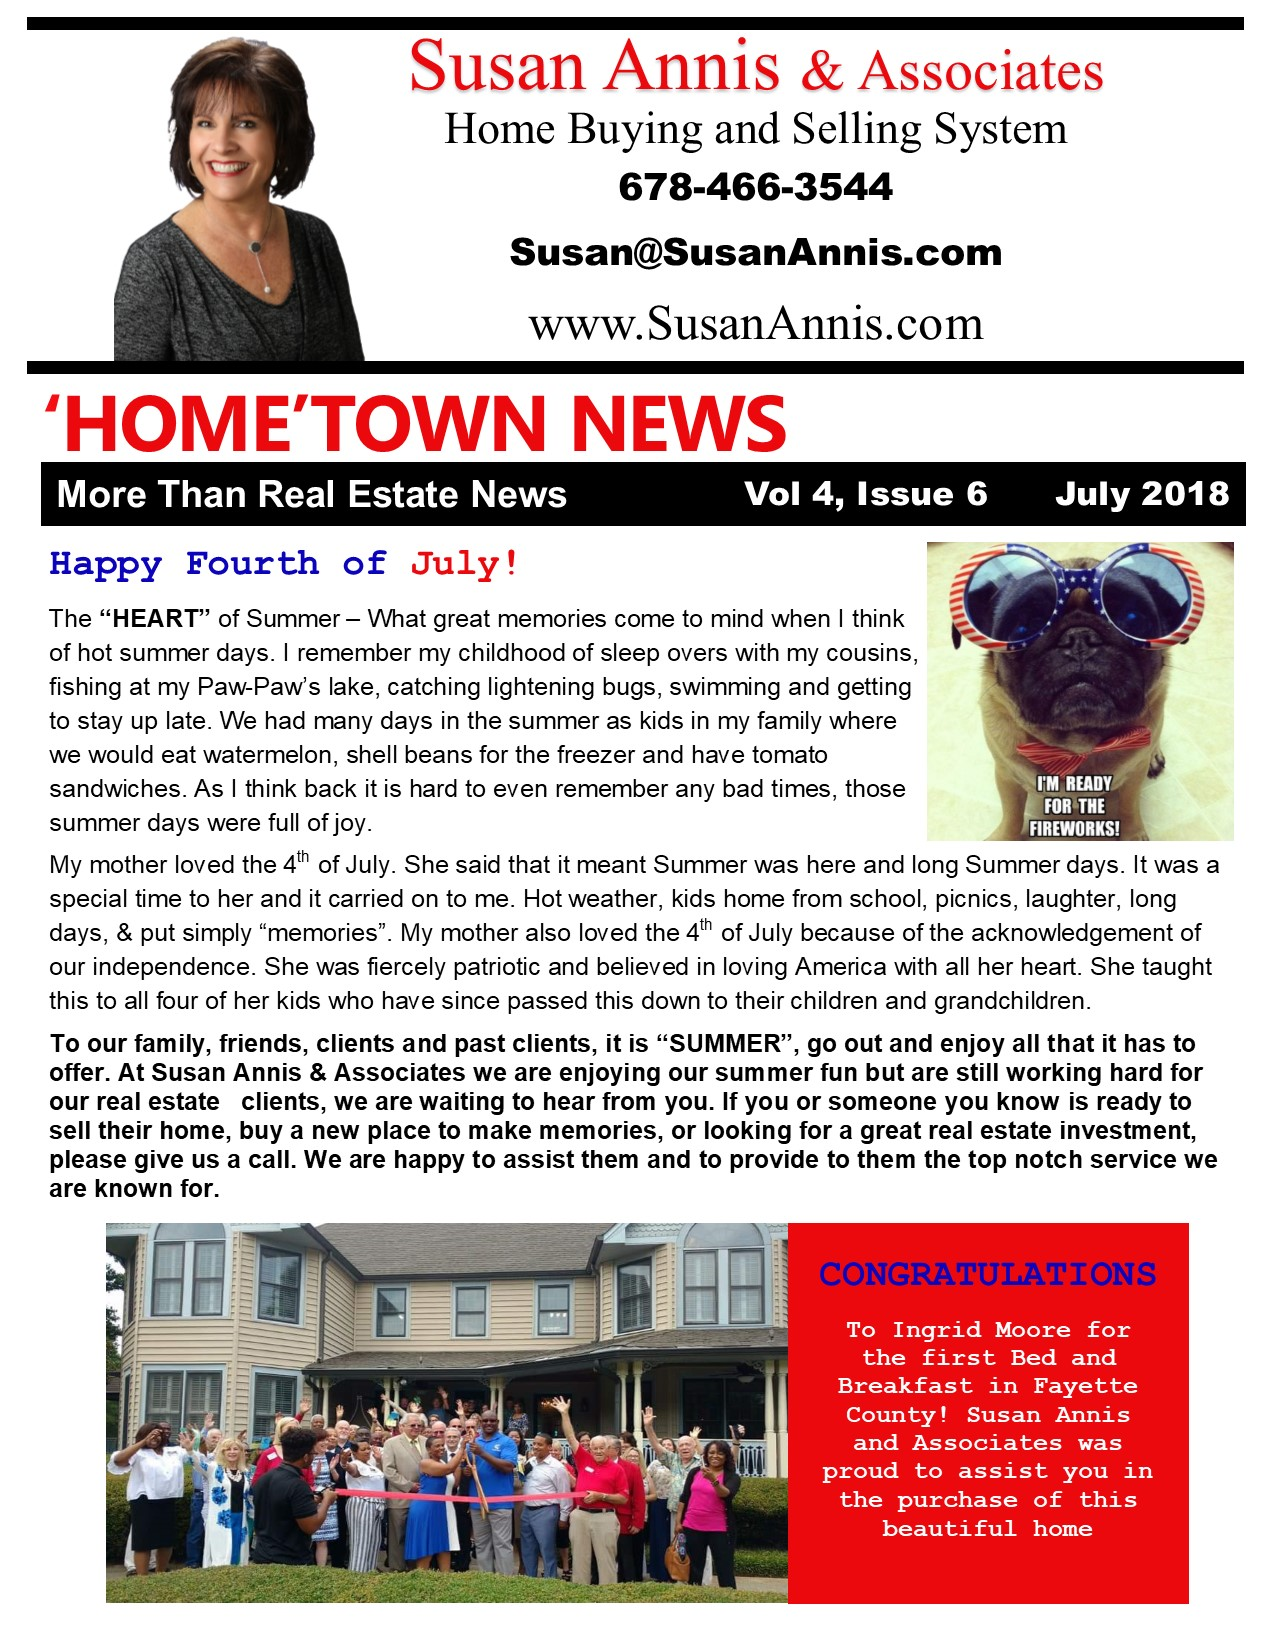 Newsletter JUly 2018 Email pg 1.jpg